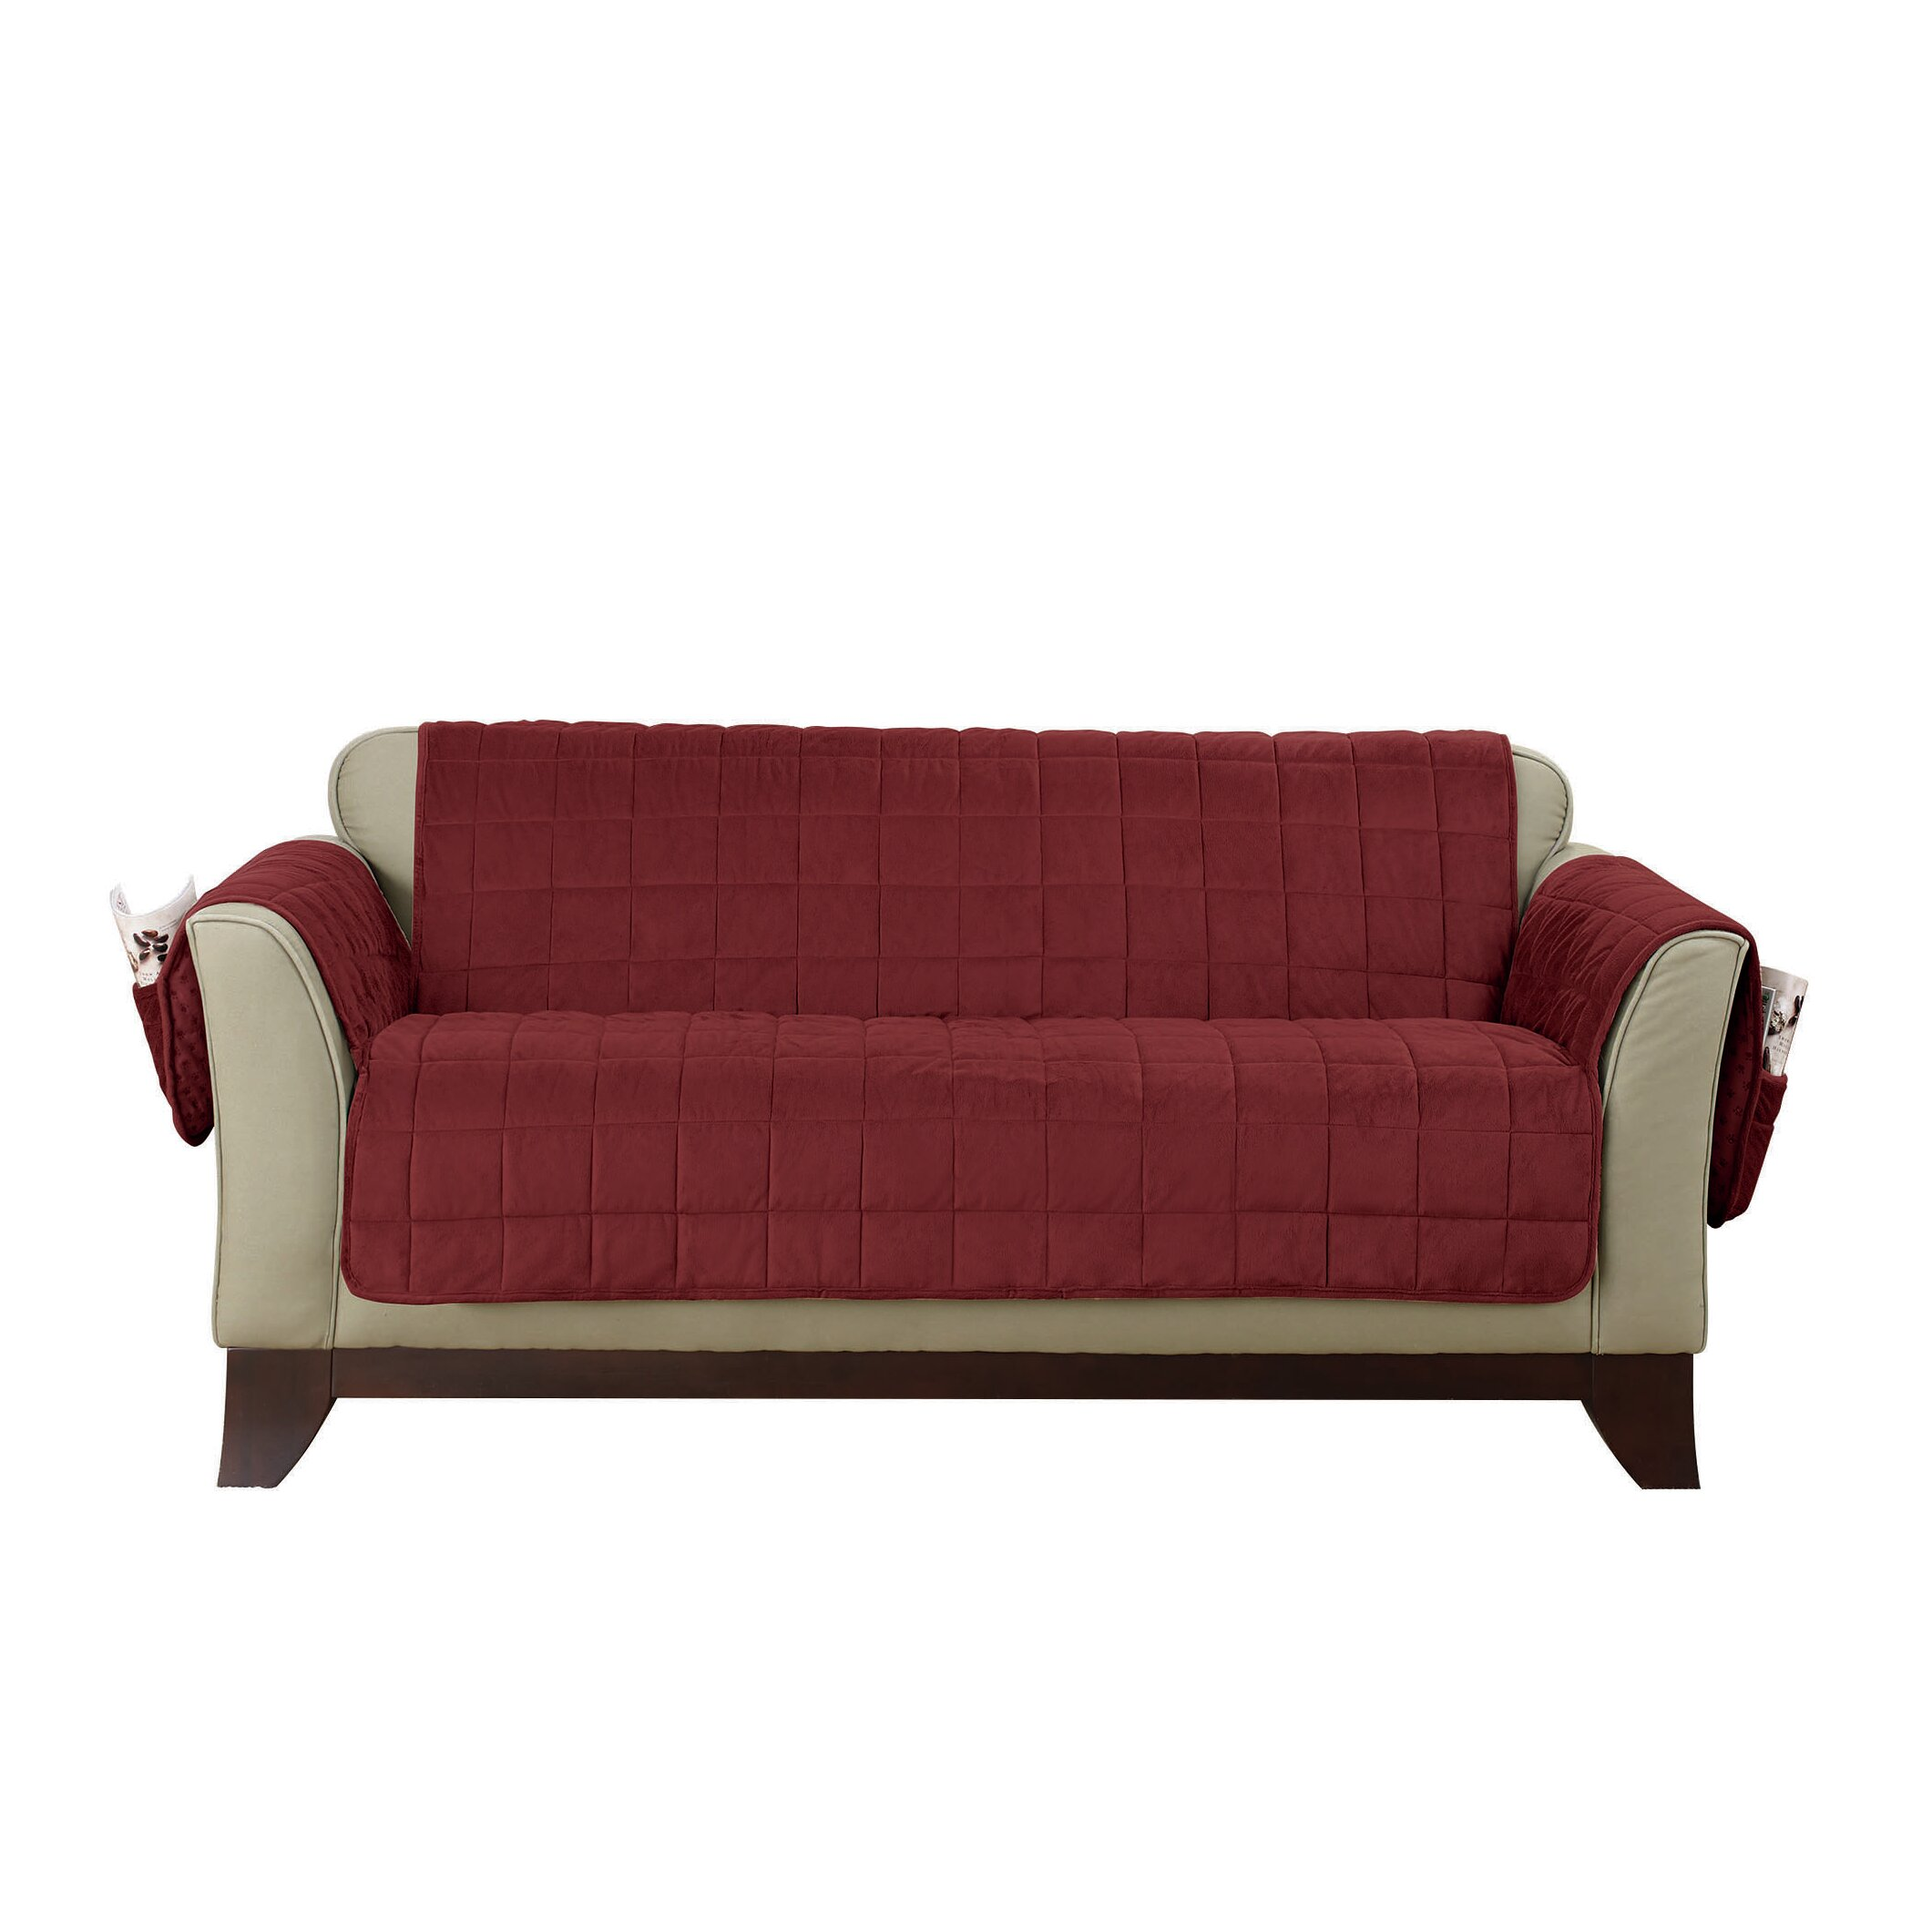 Sure fit loveseat t cushion slipcover wayfair Loveseat t cushion slipcovers